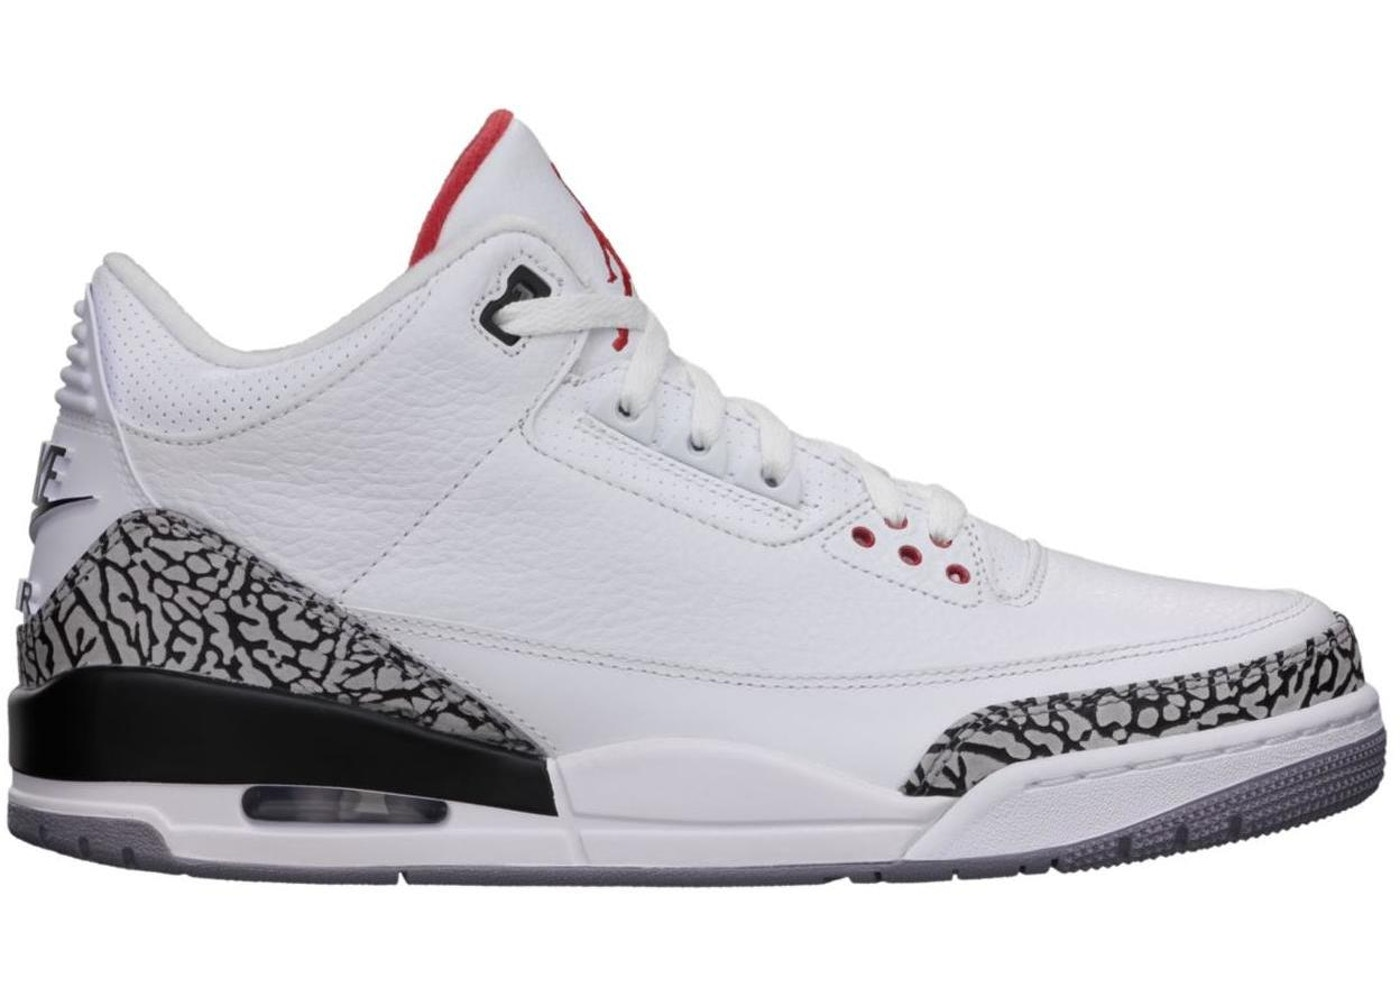 a722df16069 Buy Air Jordan 3 Shoes   Deadstock Sneakers